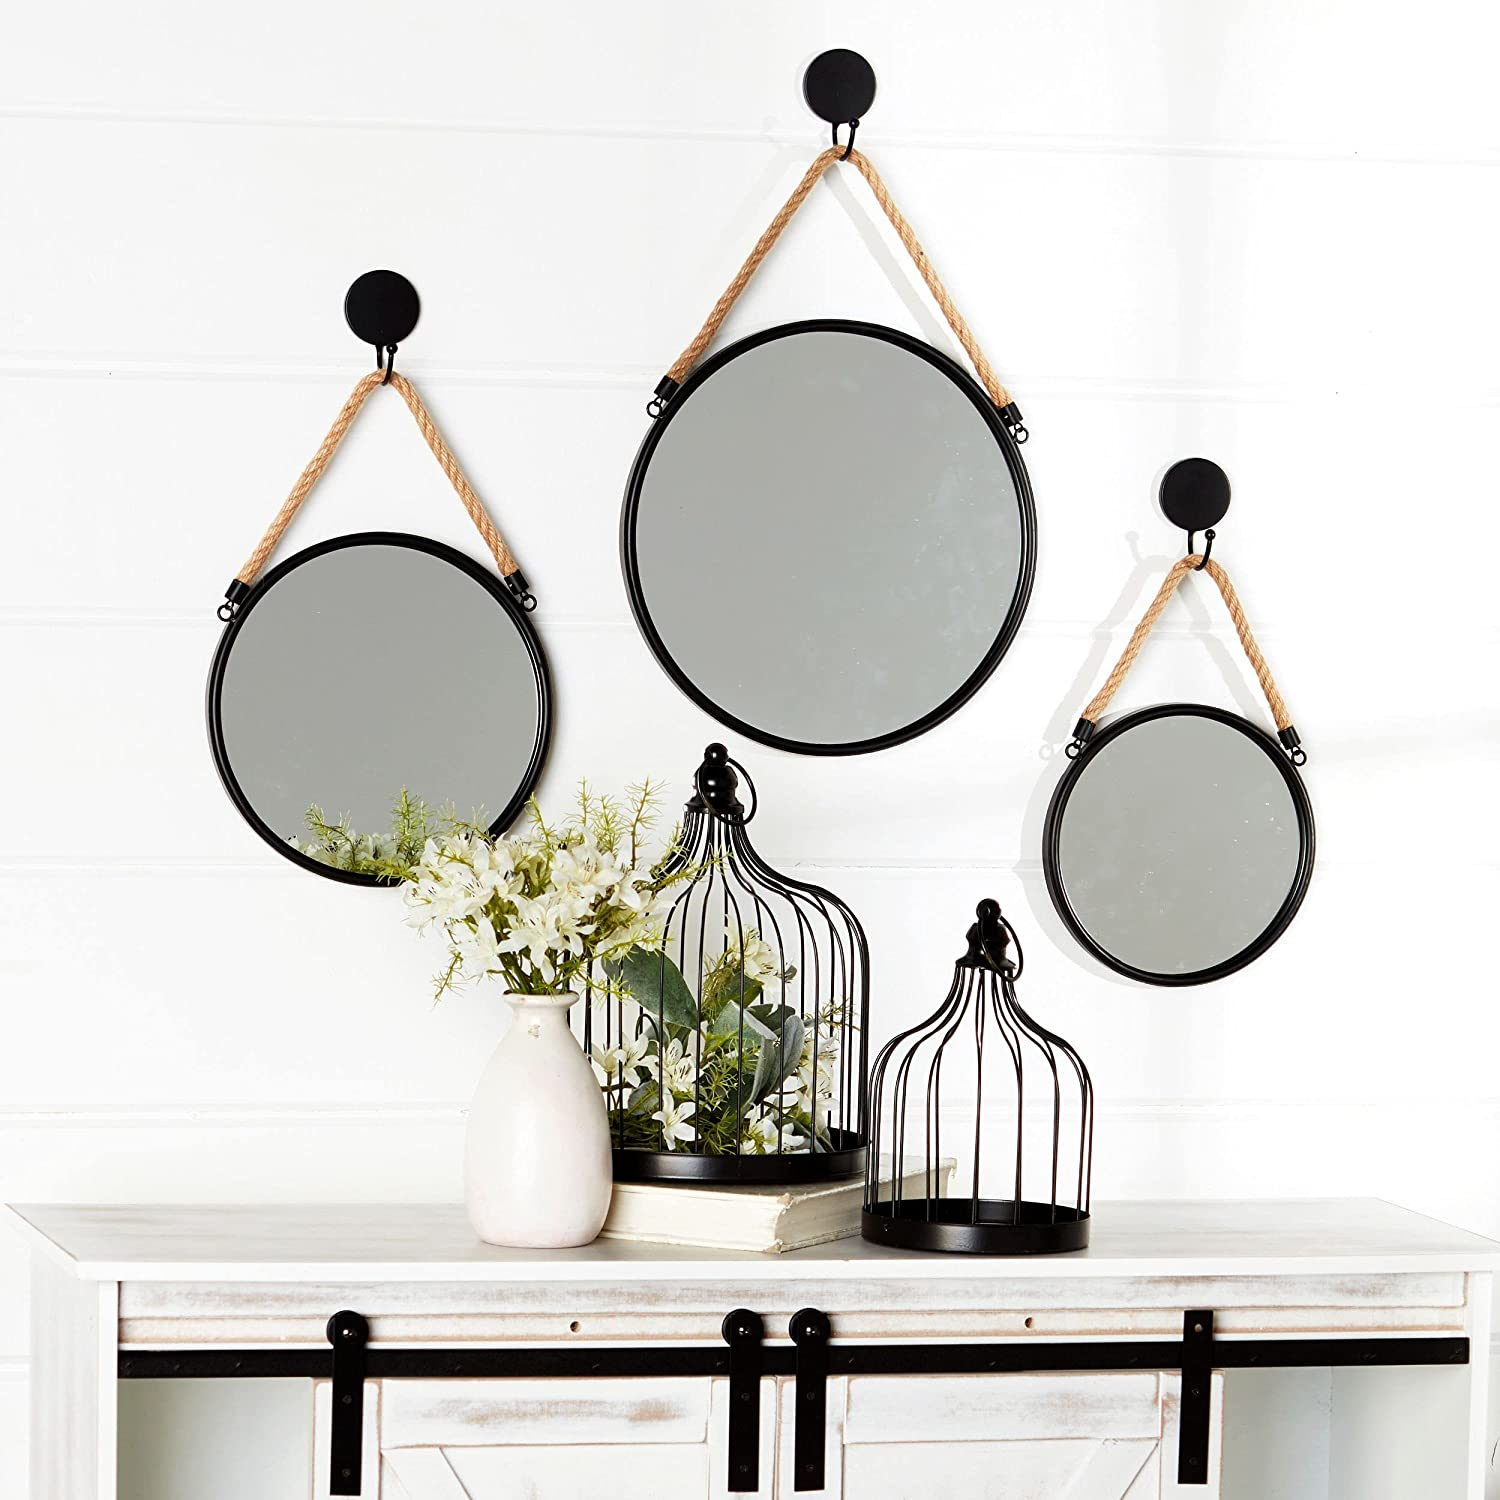 The Lakeside Collection Farmhouse Mirrors with Rope Hangers - Boho Wall Decor - Set of 3 - Round